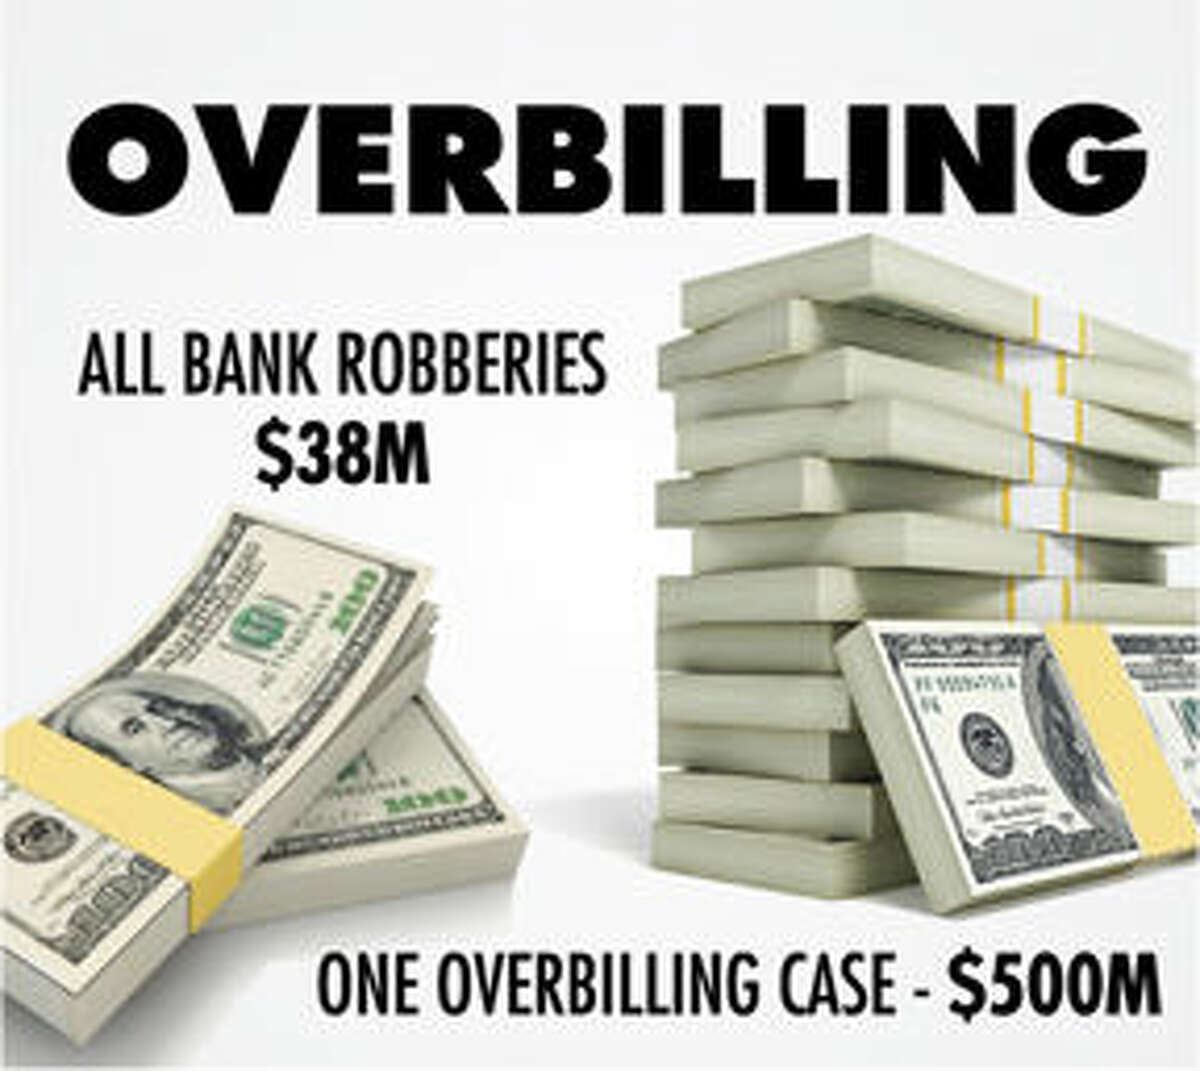 In 2012 SAIC (now Leidos) agreed to refund to NYC $500M overbilled on a single project. All bank robberies in the USA in the preceding year amounted to $38M.